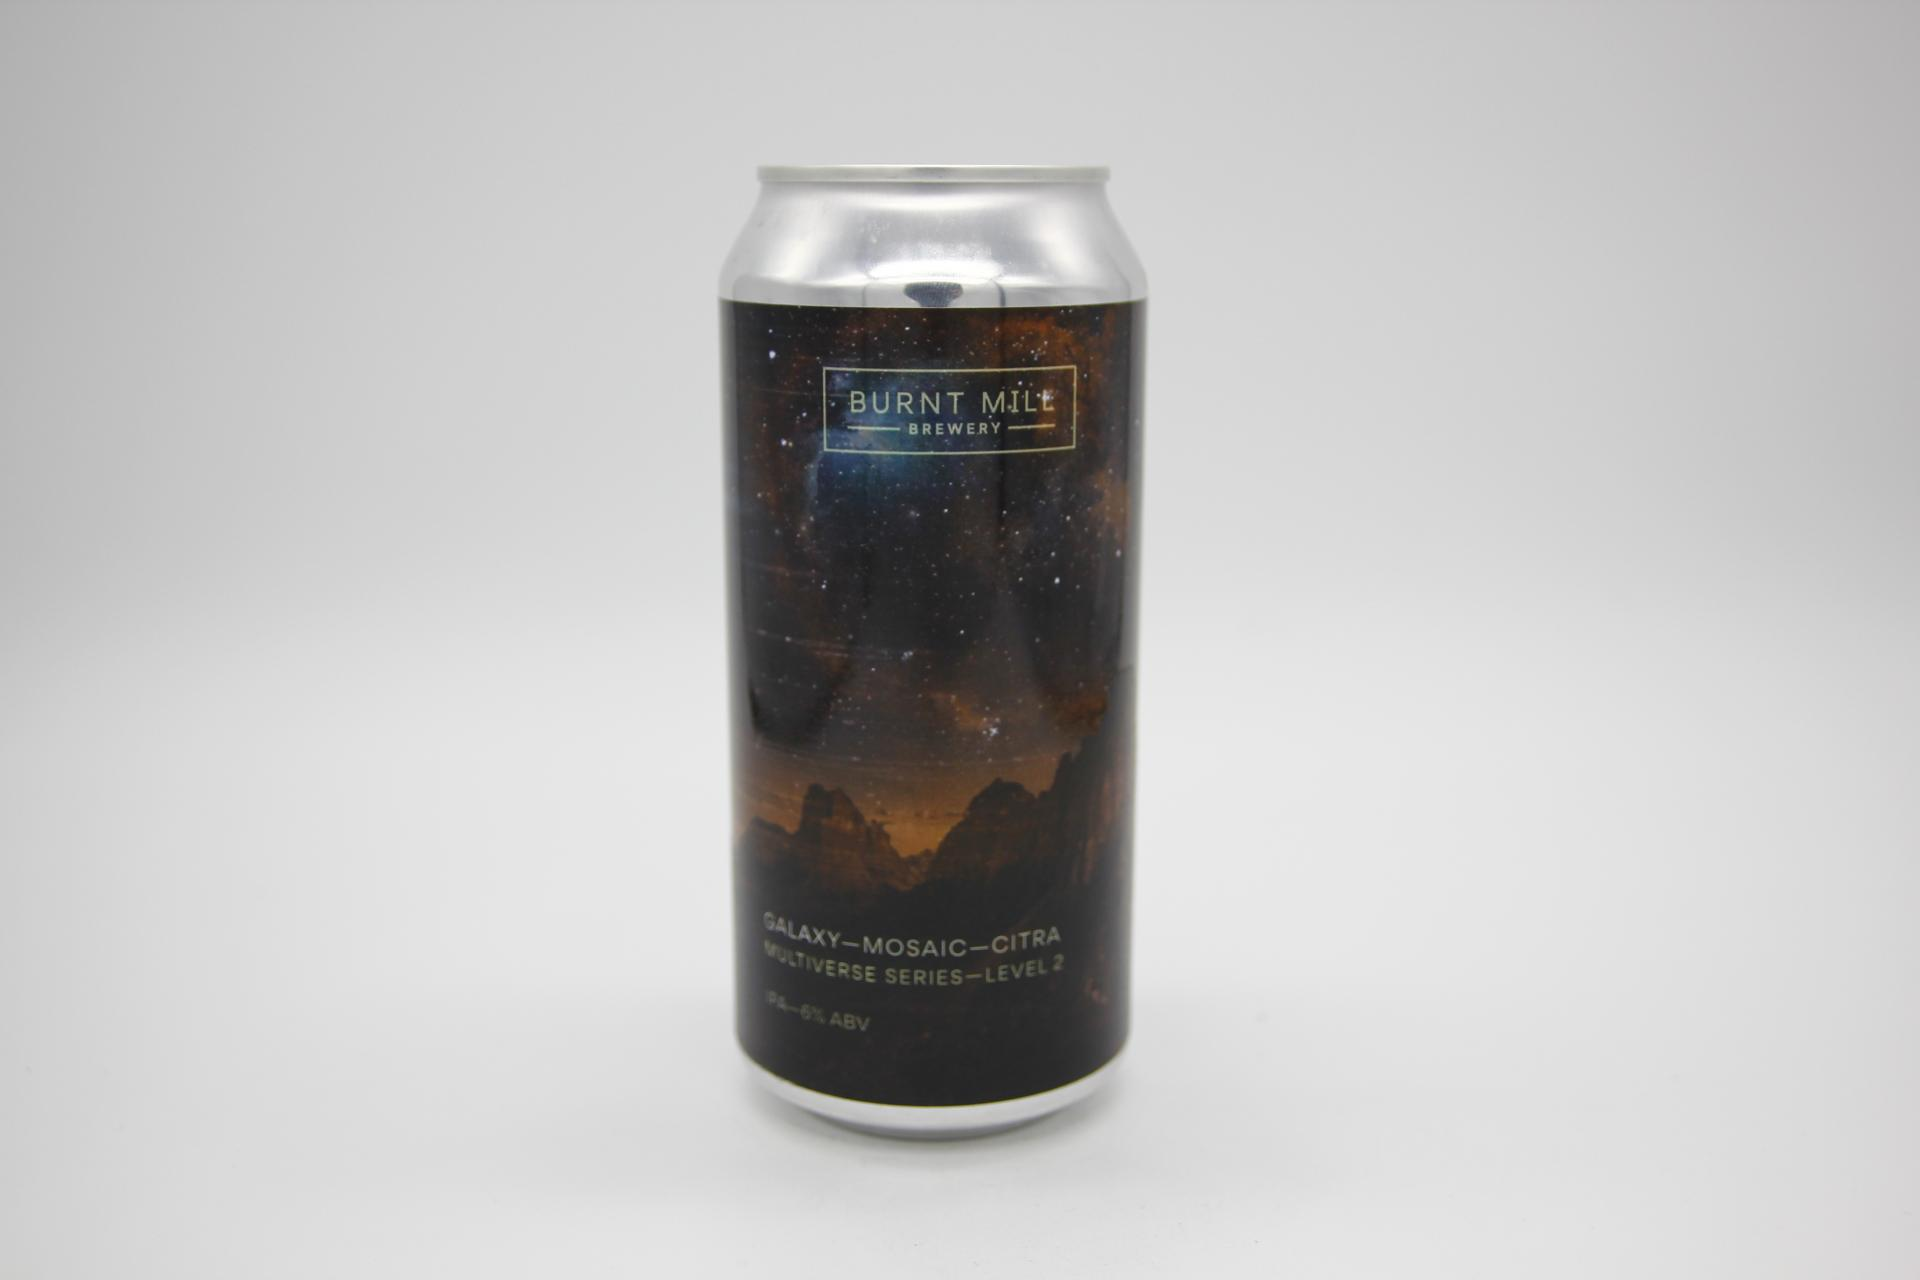 BURNT MILL - MULTIVERSE SERIES - LEVEL 2 44cl